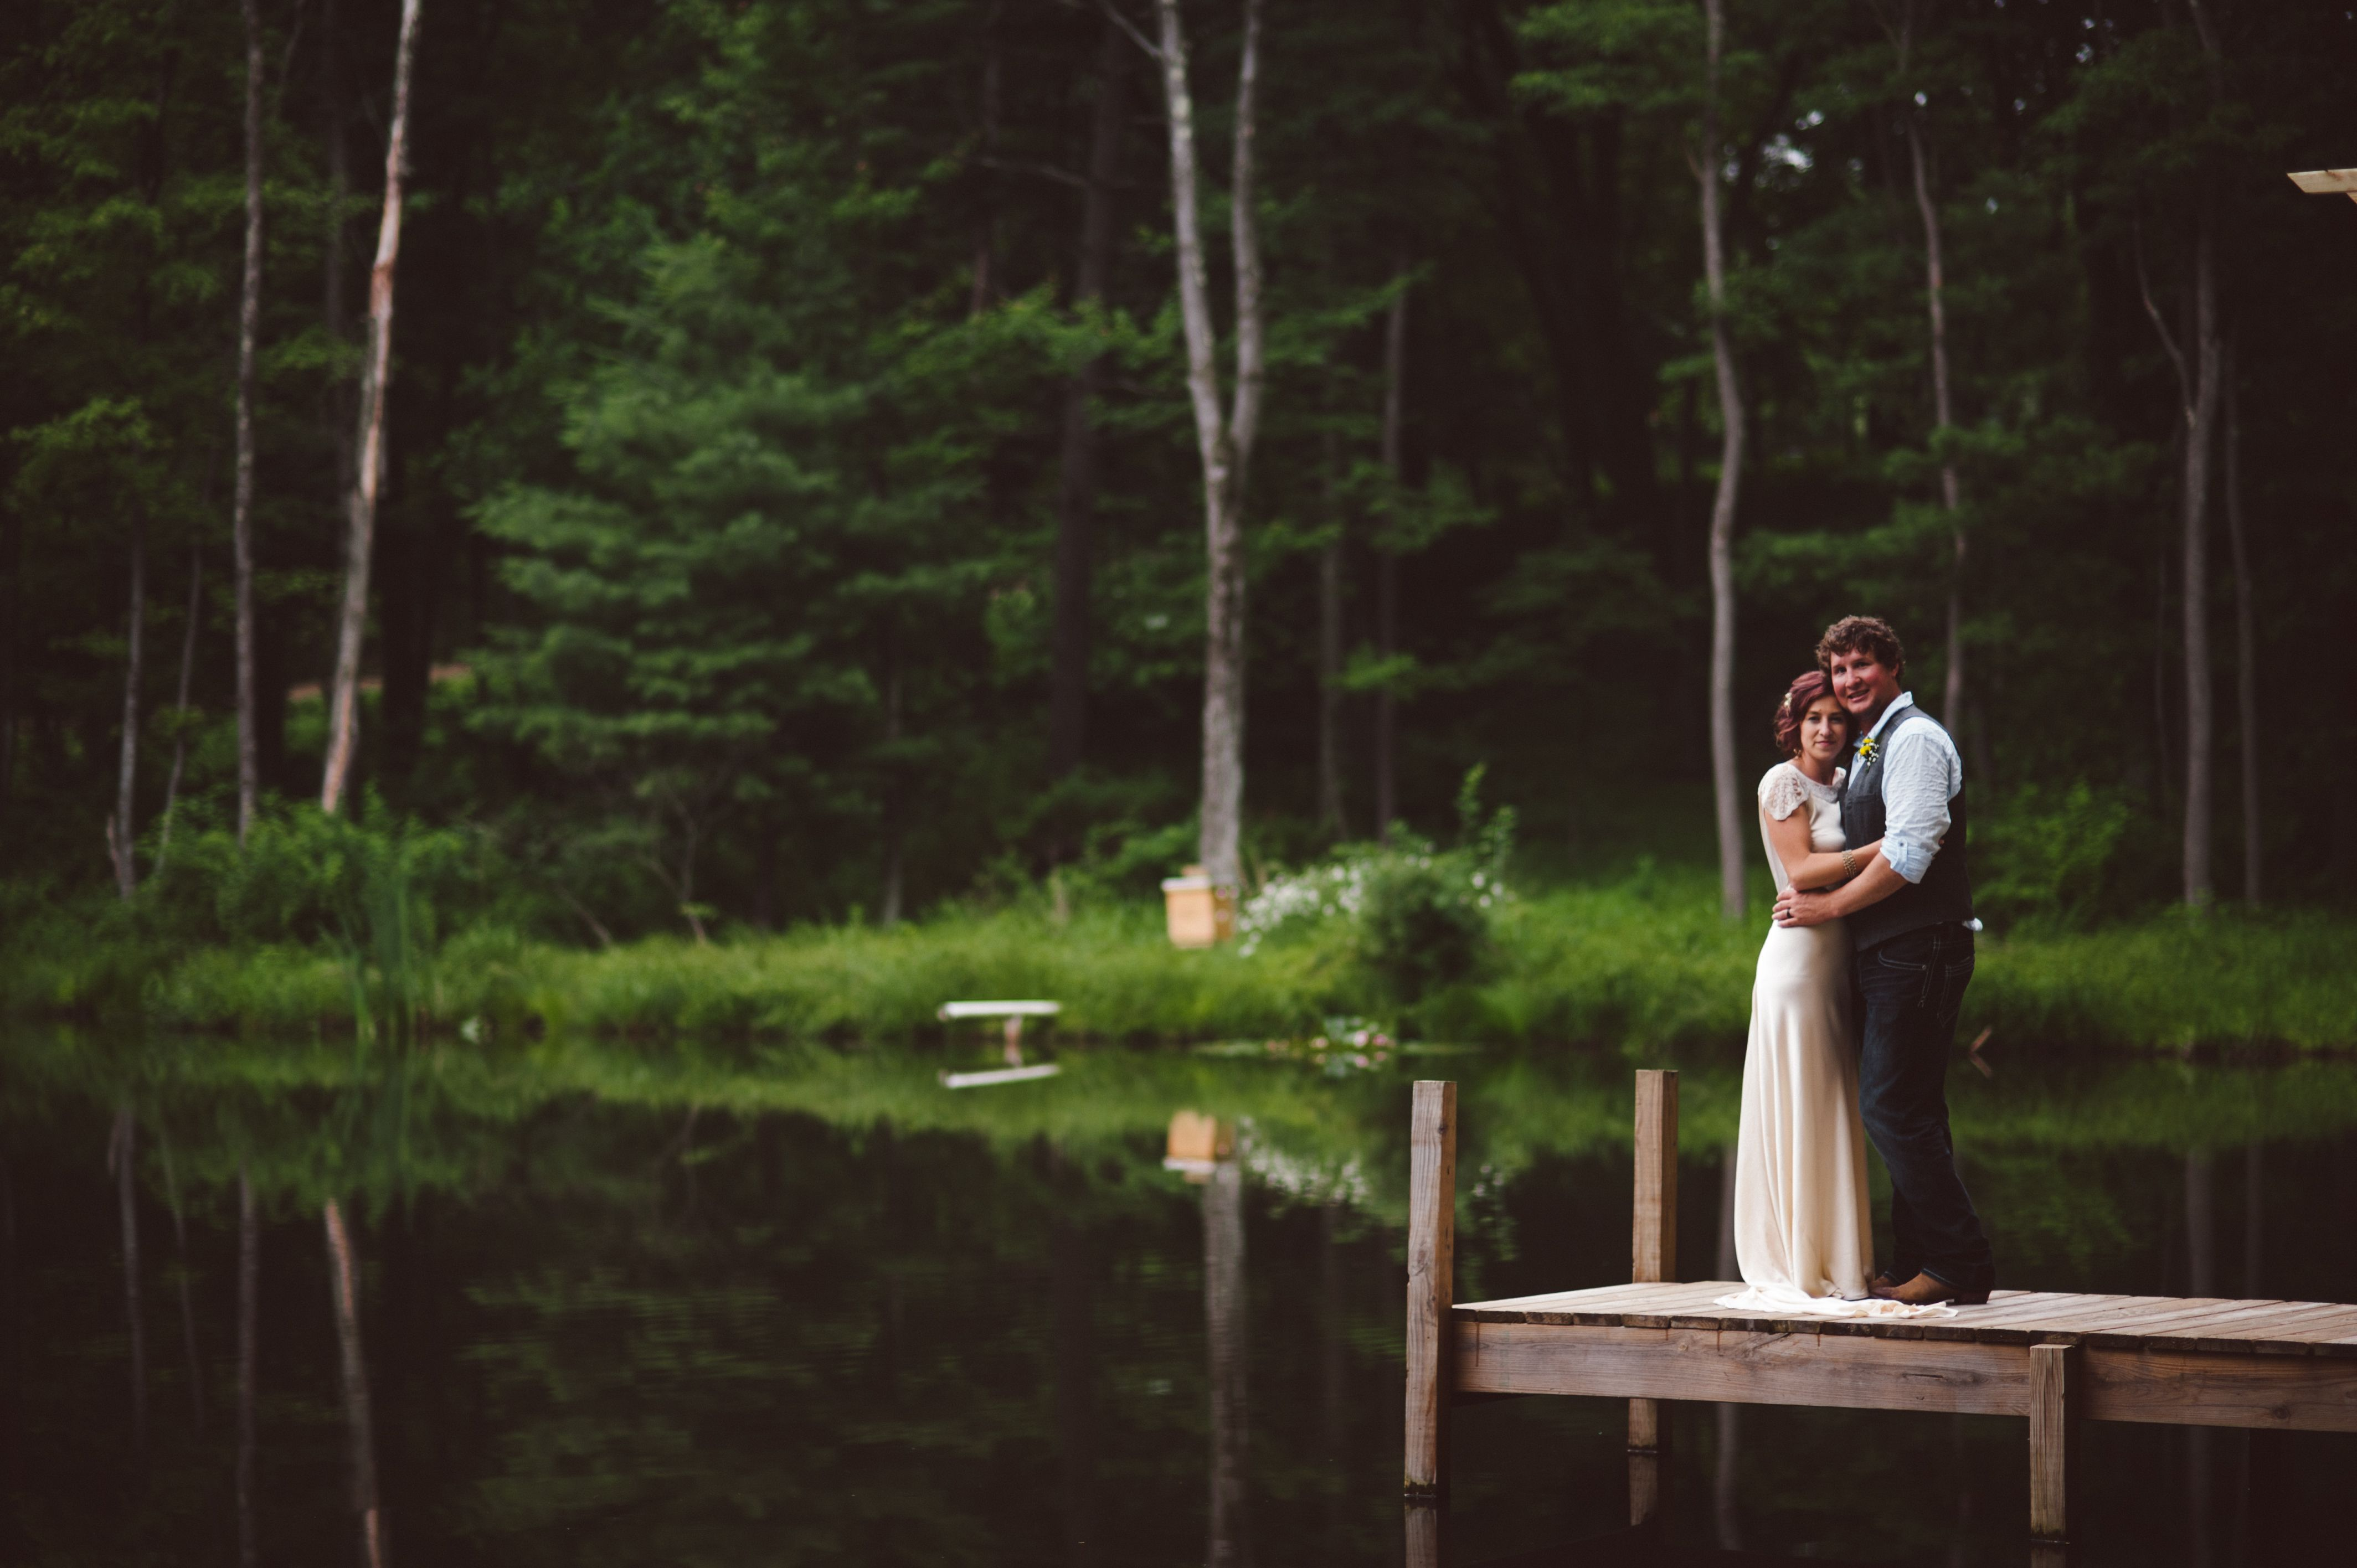 The Pond www.TheMohicans.Net (With images) | Barn wedding ...